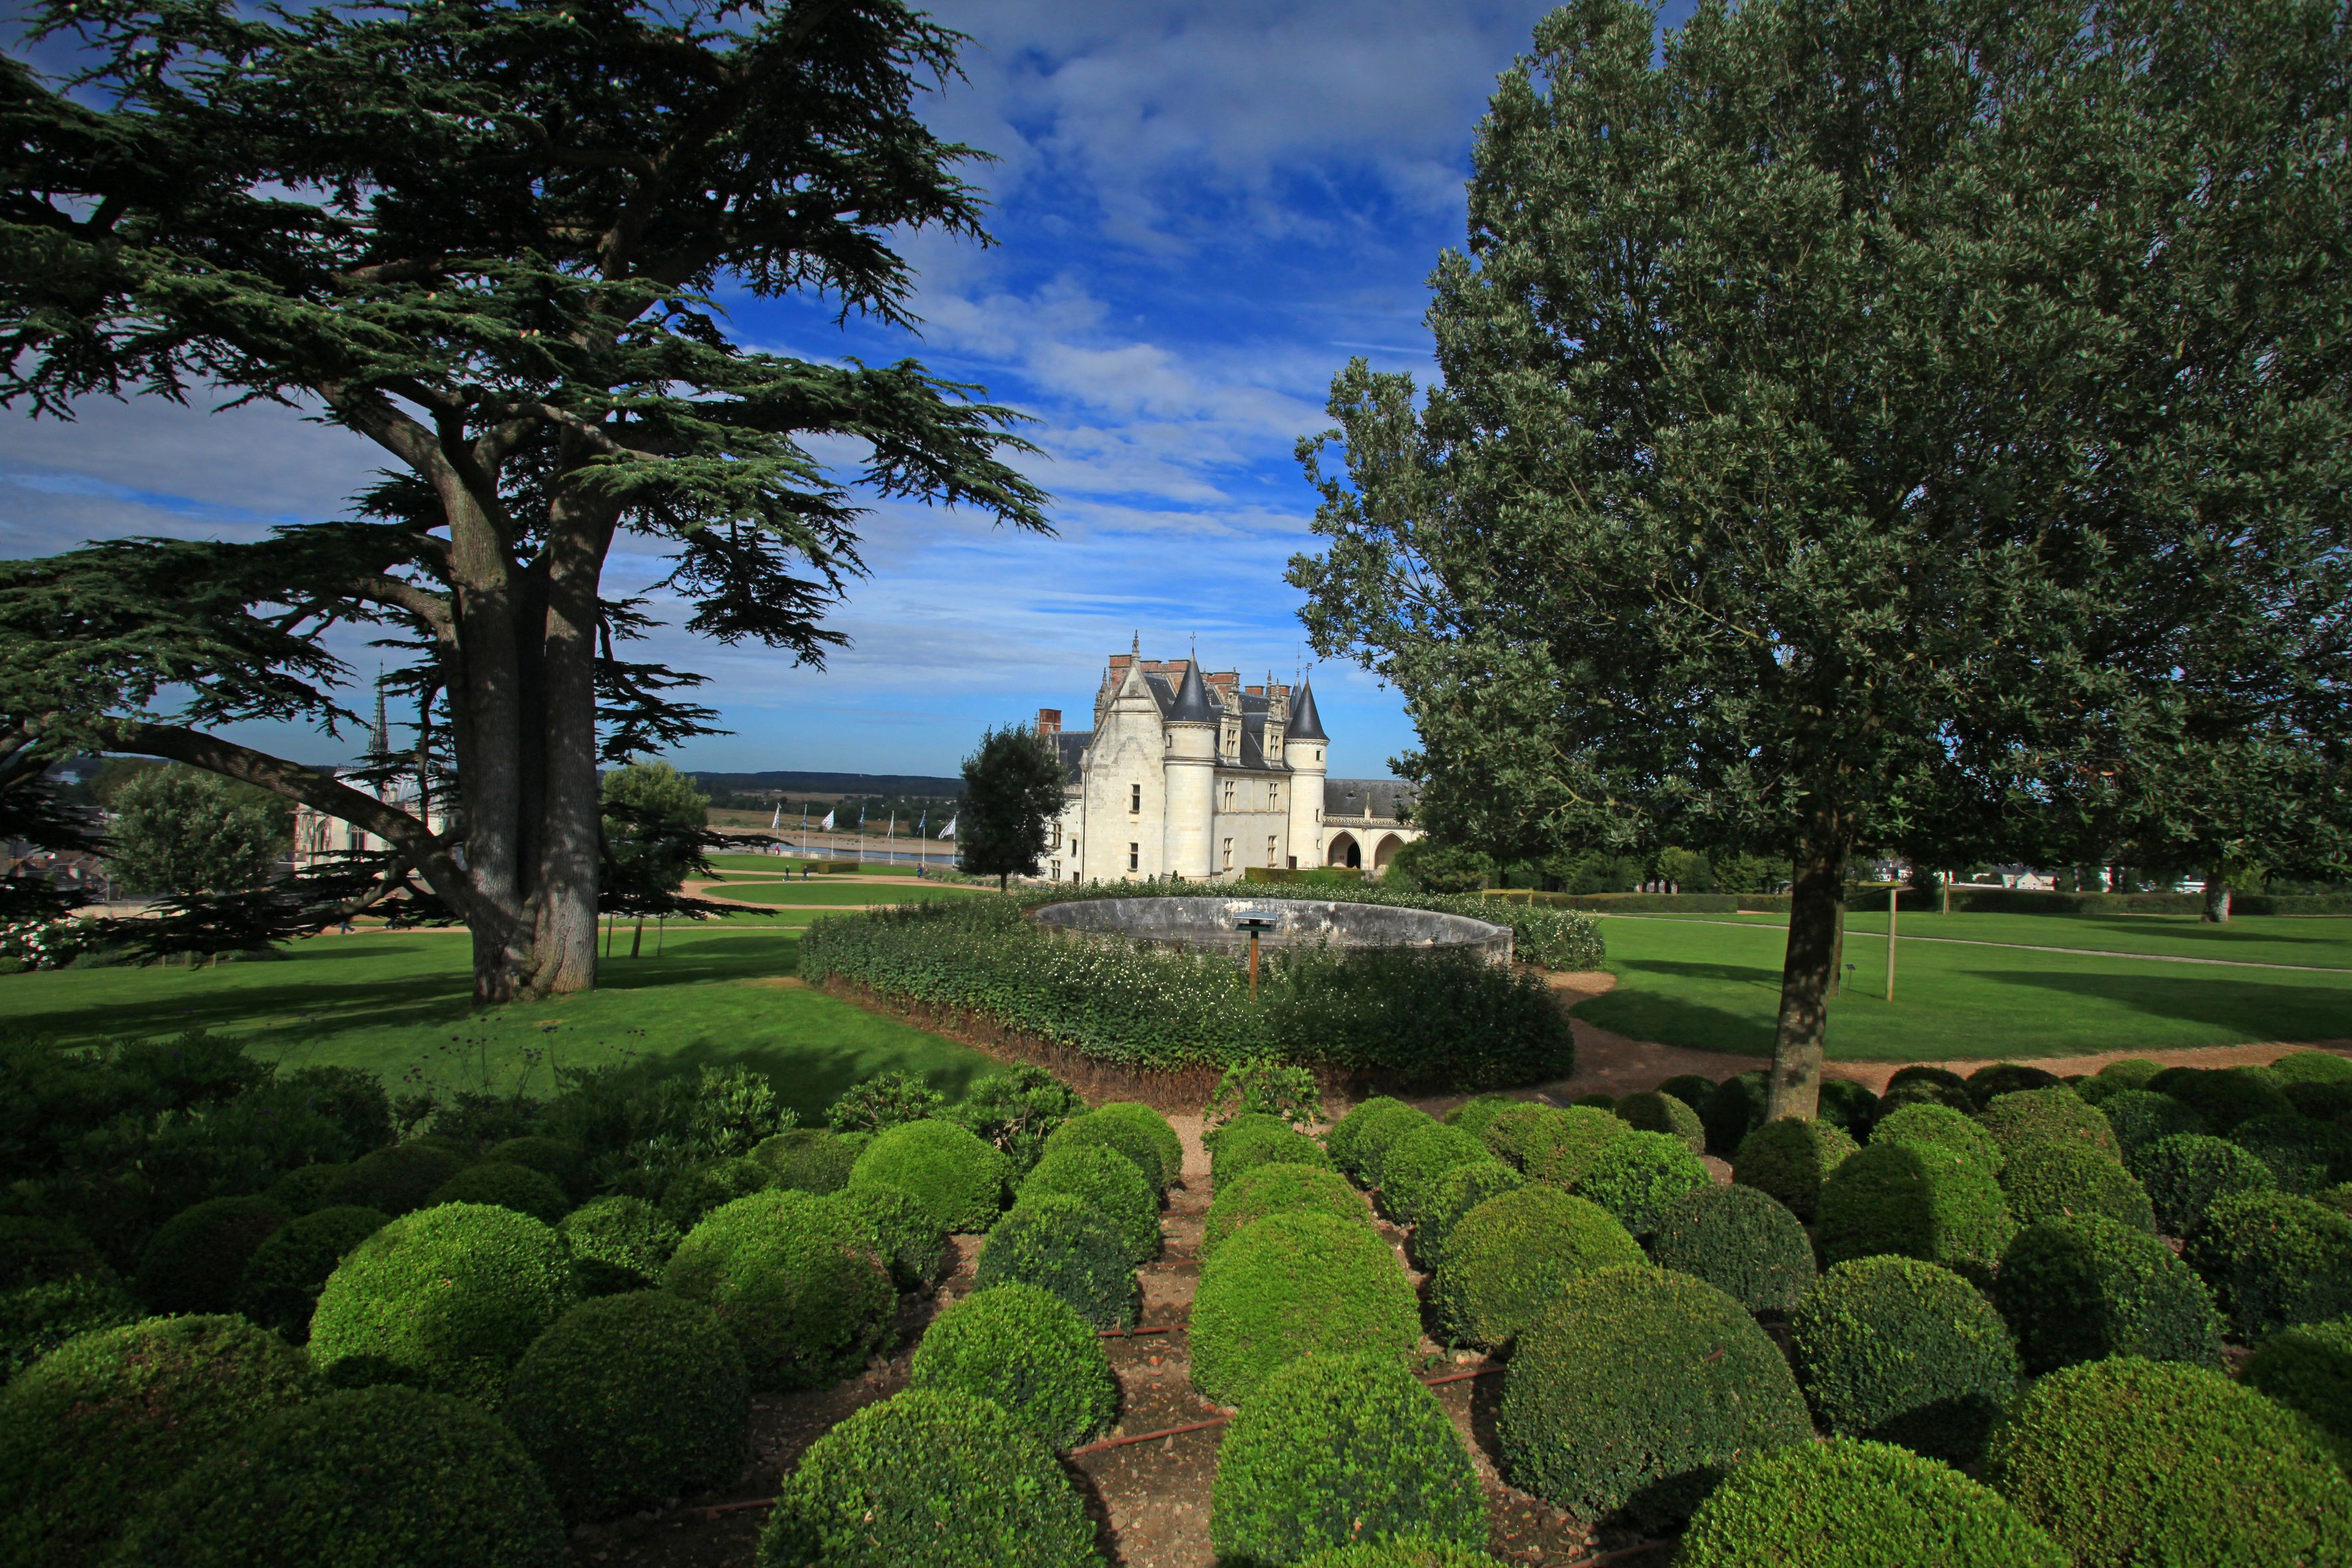 Loire Valley 3 day bike trip in Loire Valley a cycling tour